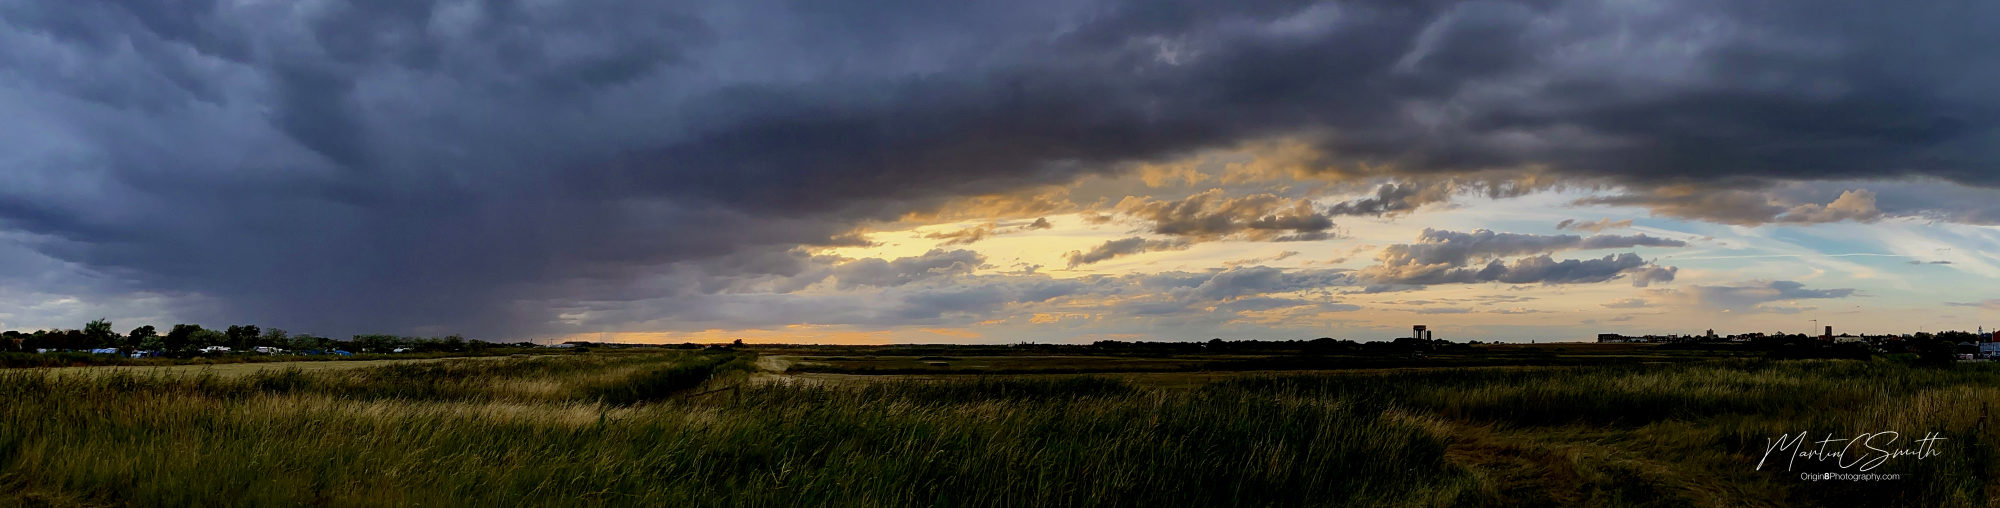 Sunset over the reed beds